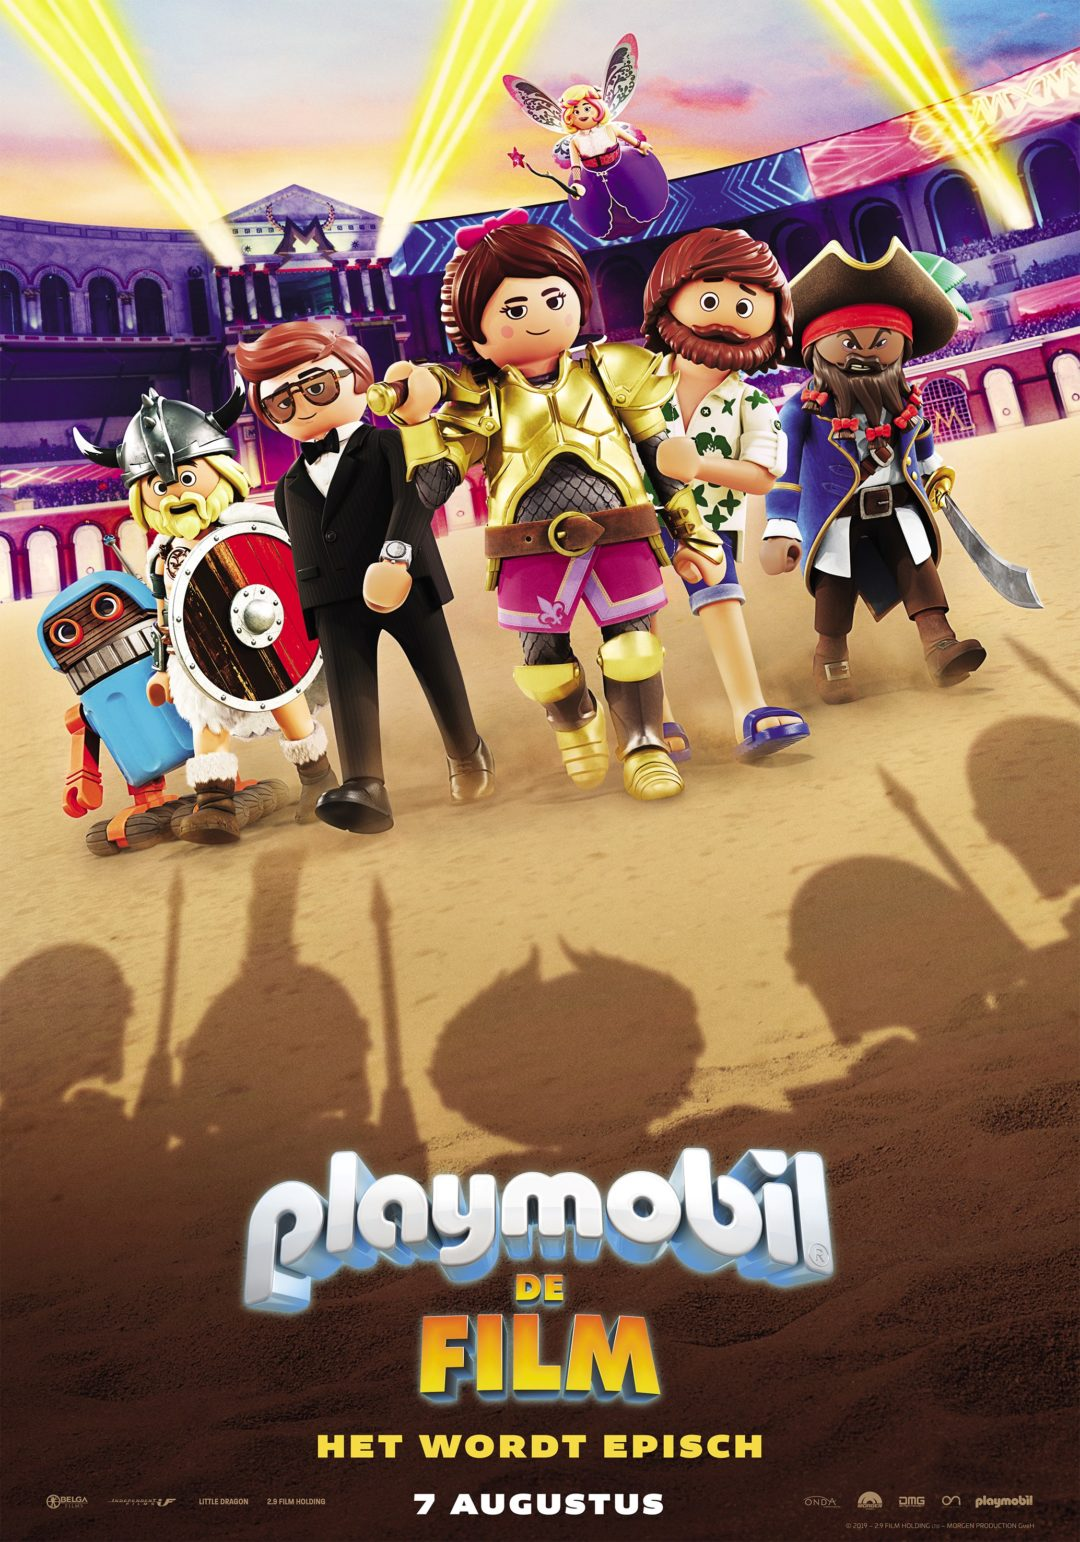 Playmobil-De-Film_ps_1_jpg_sd-high.jpg